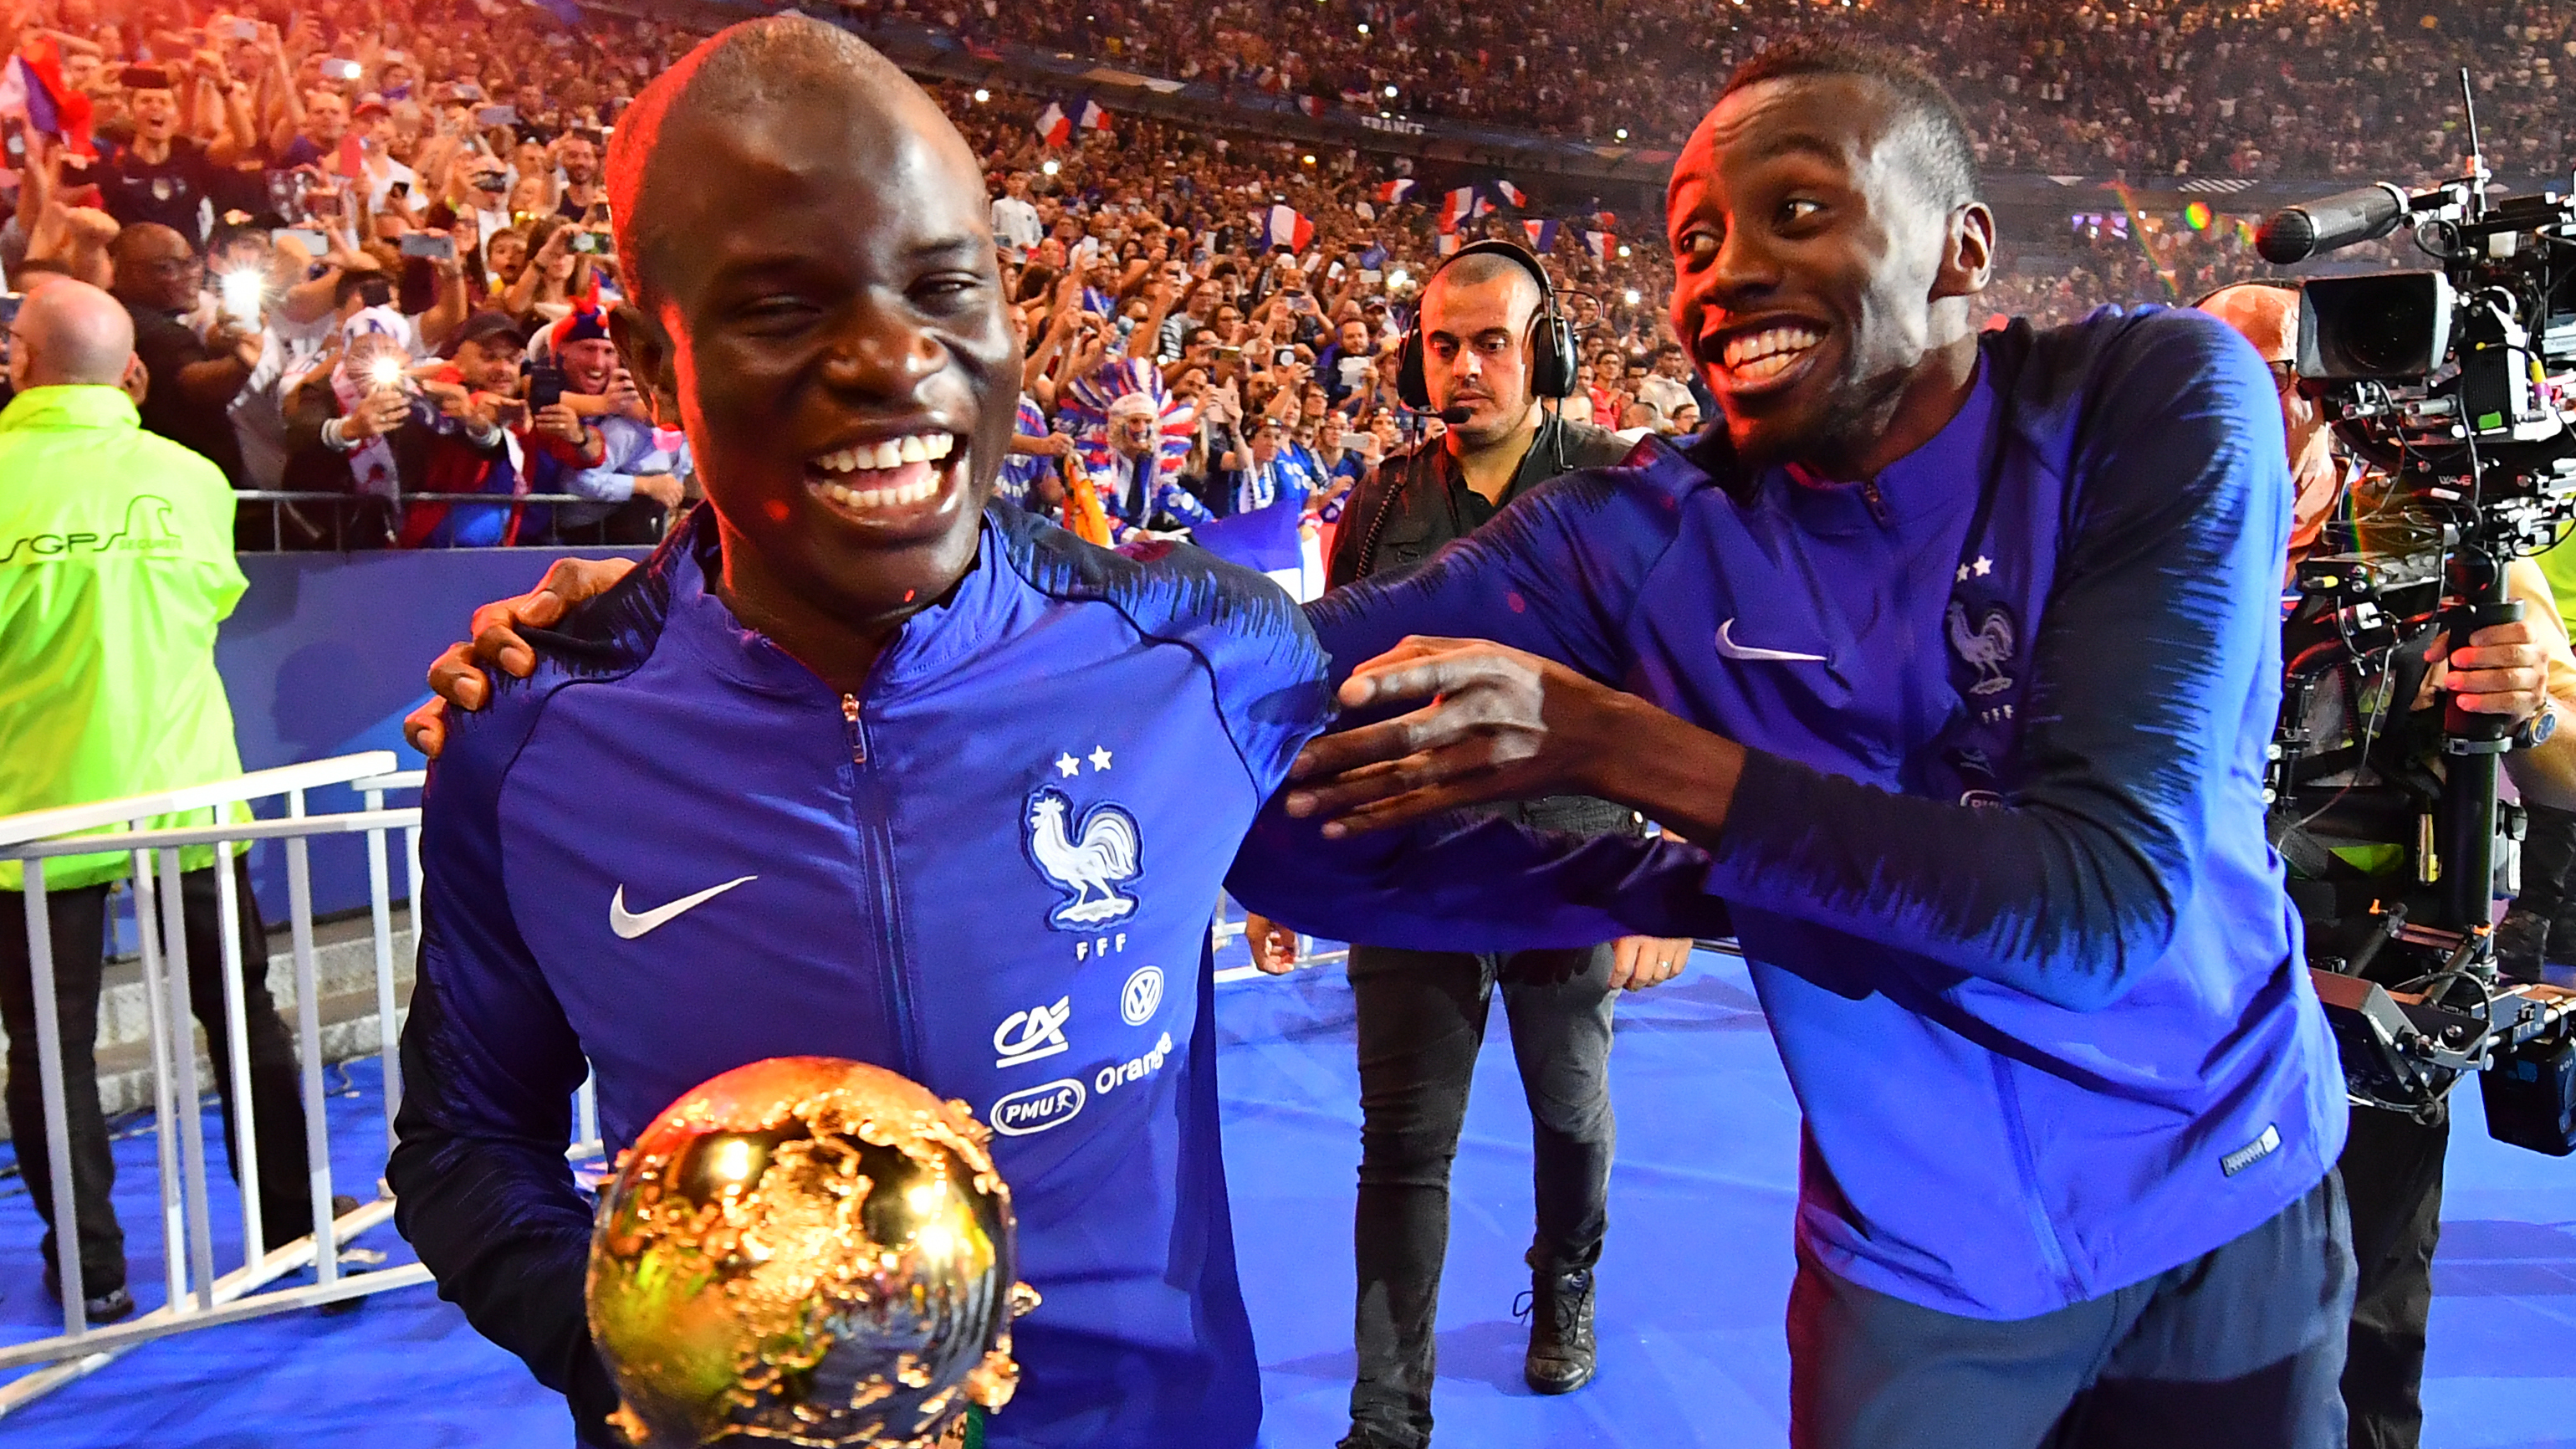 N'Golo Kante Accepts Dinner Invite From Fan, They Eat Curry, Watch Match Of The Day And Play FIFA